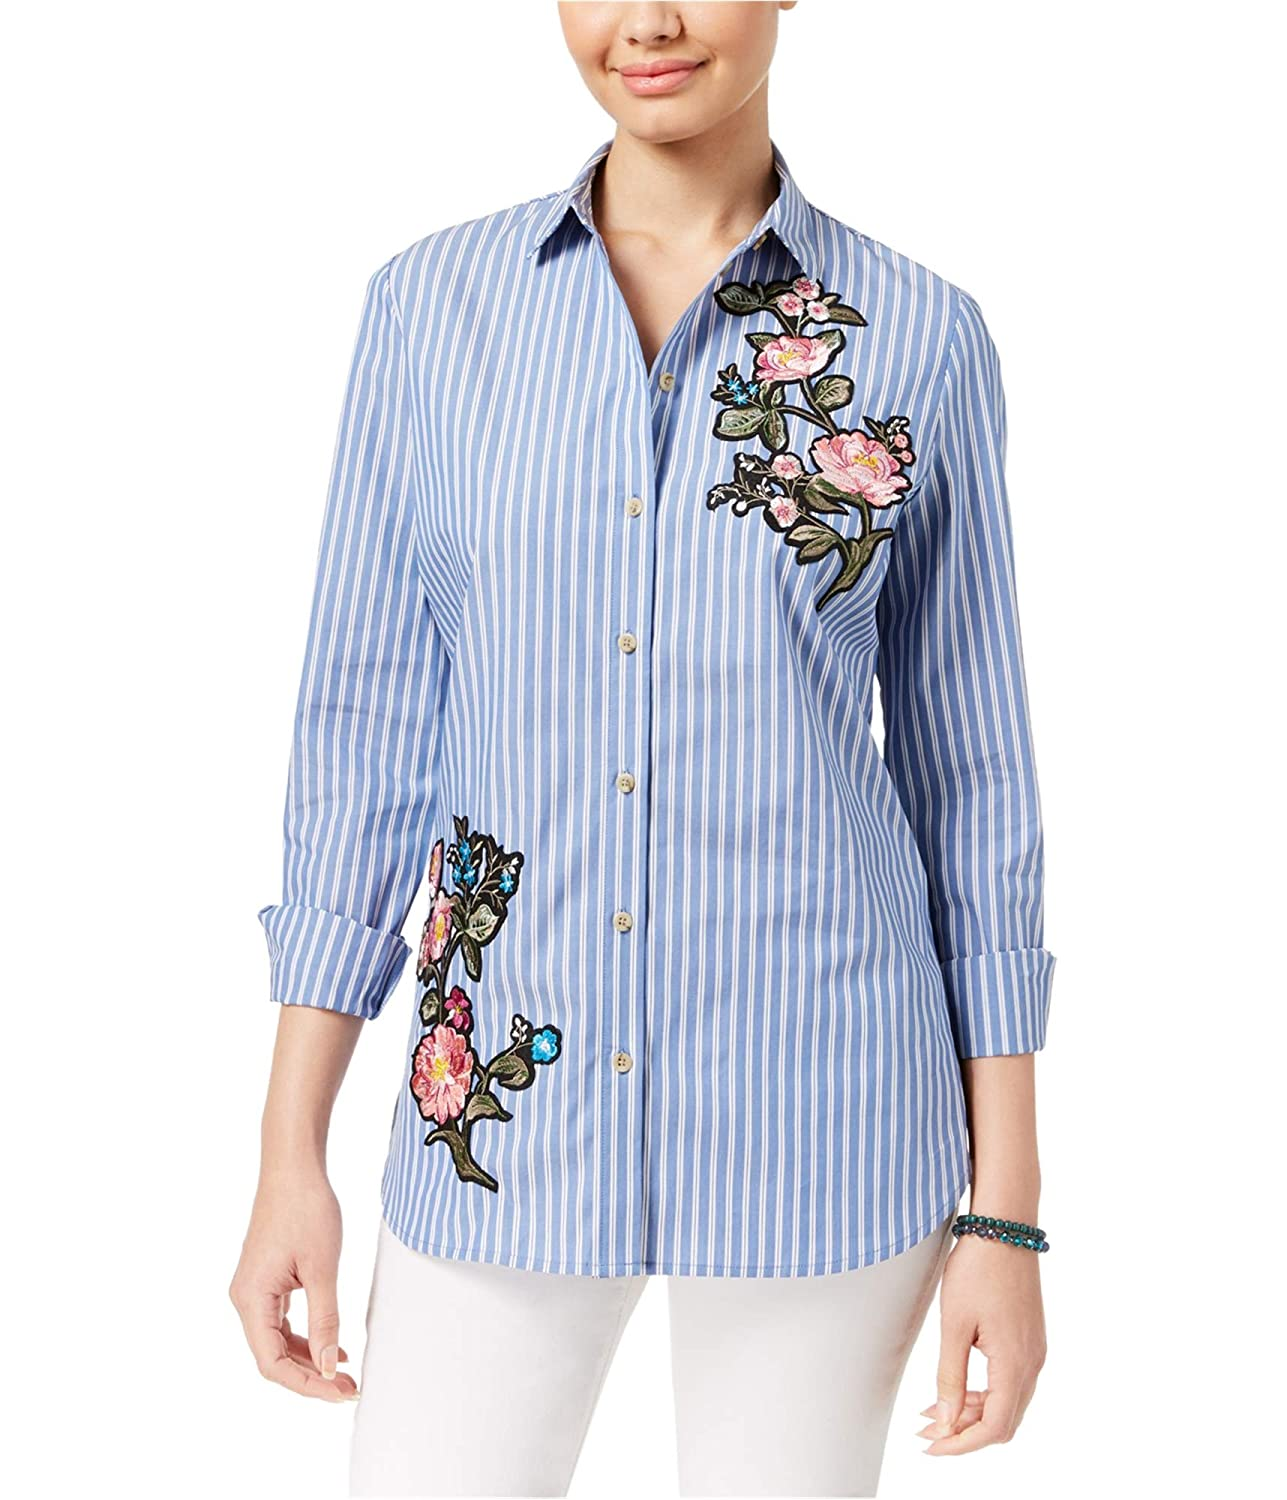 Polly /& Esther Womens Juniors Embroidered Striped Button-Down Top